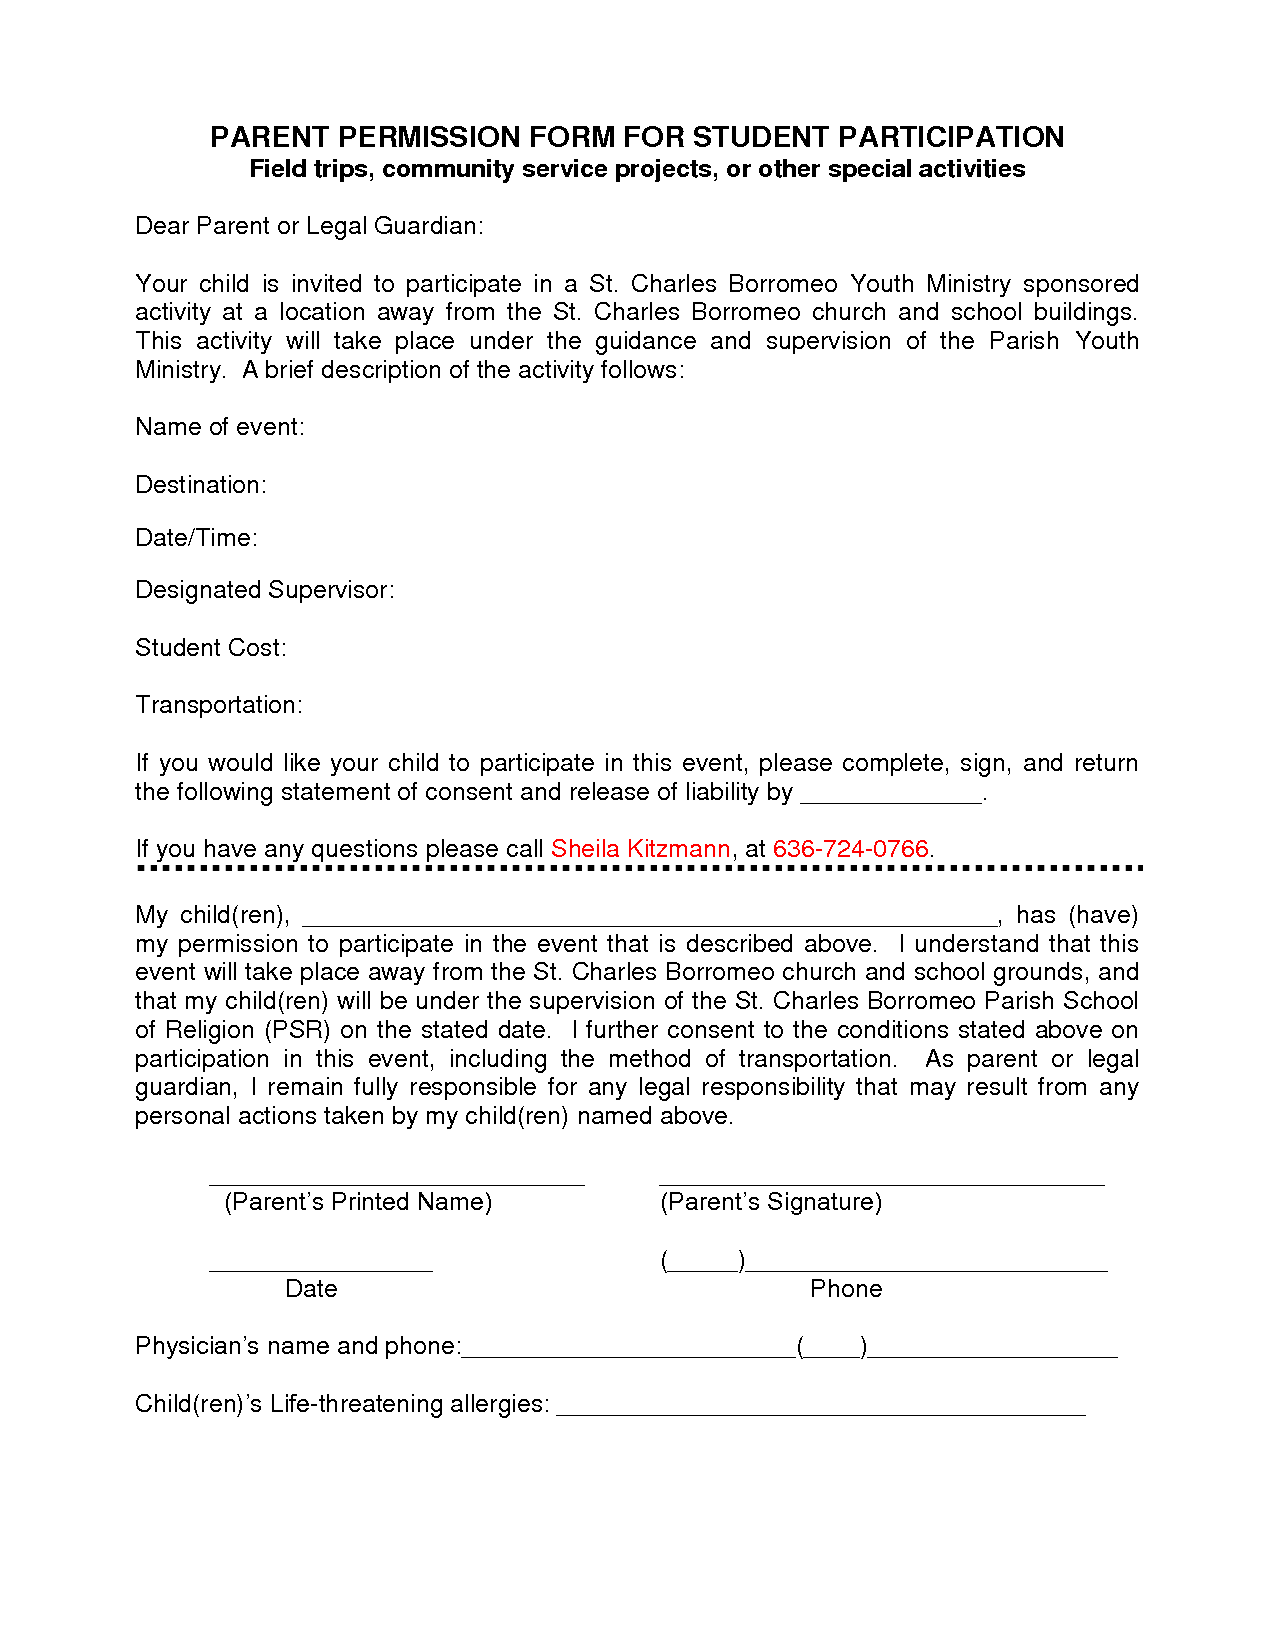 Participation Form Template  Parent Permission Form For Student